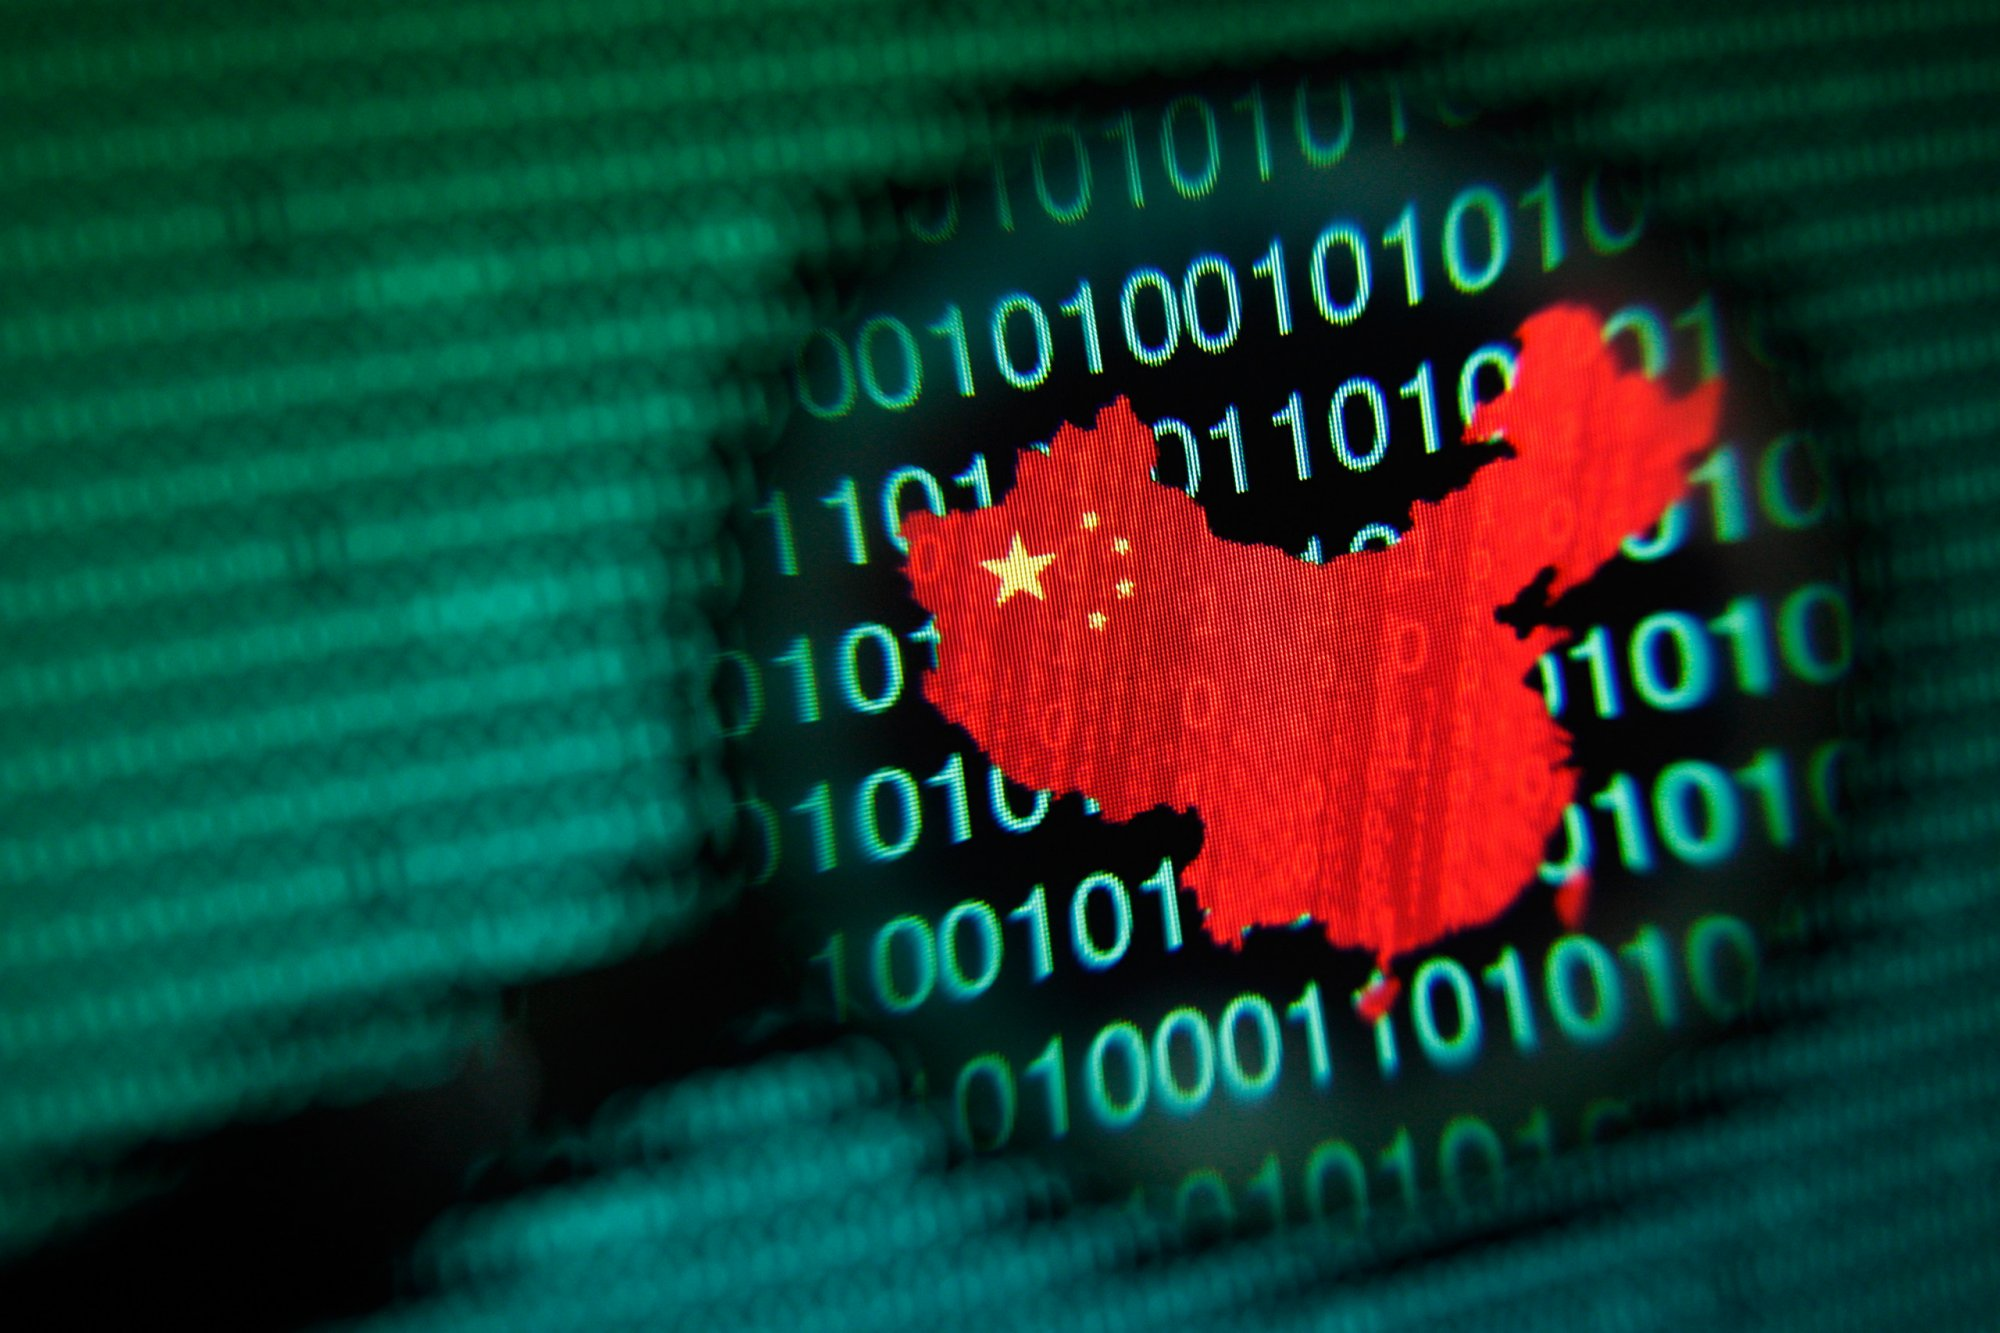 Image: Despite cyber agreement, State Dept. says China is continuing to launch attacks at U.S. systems